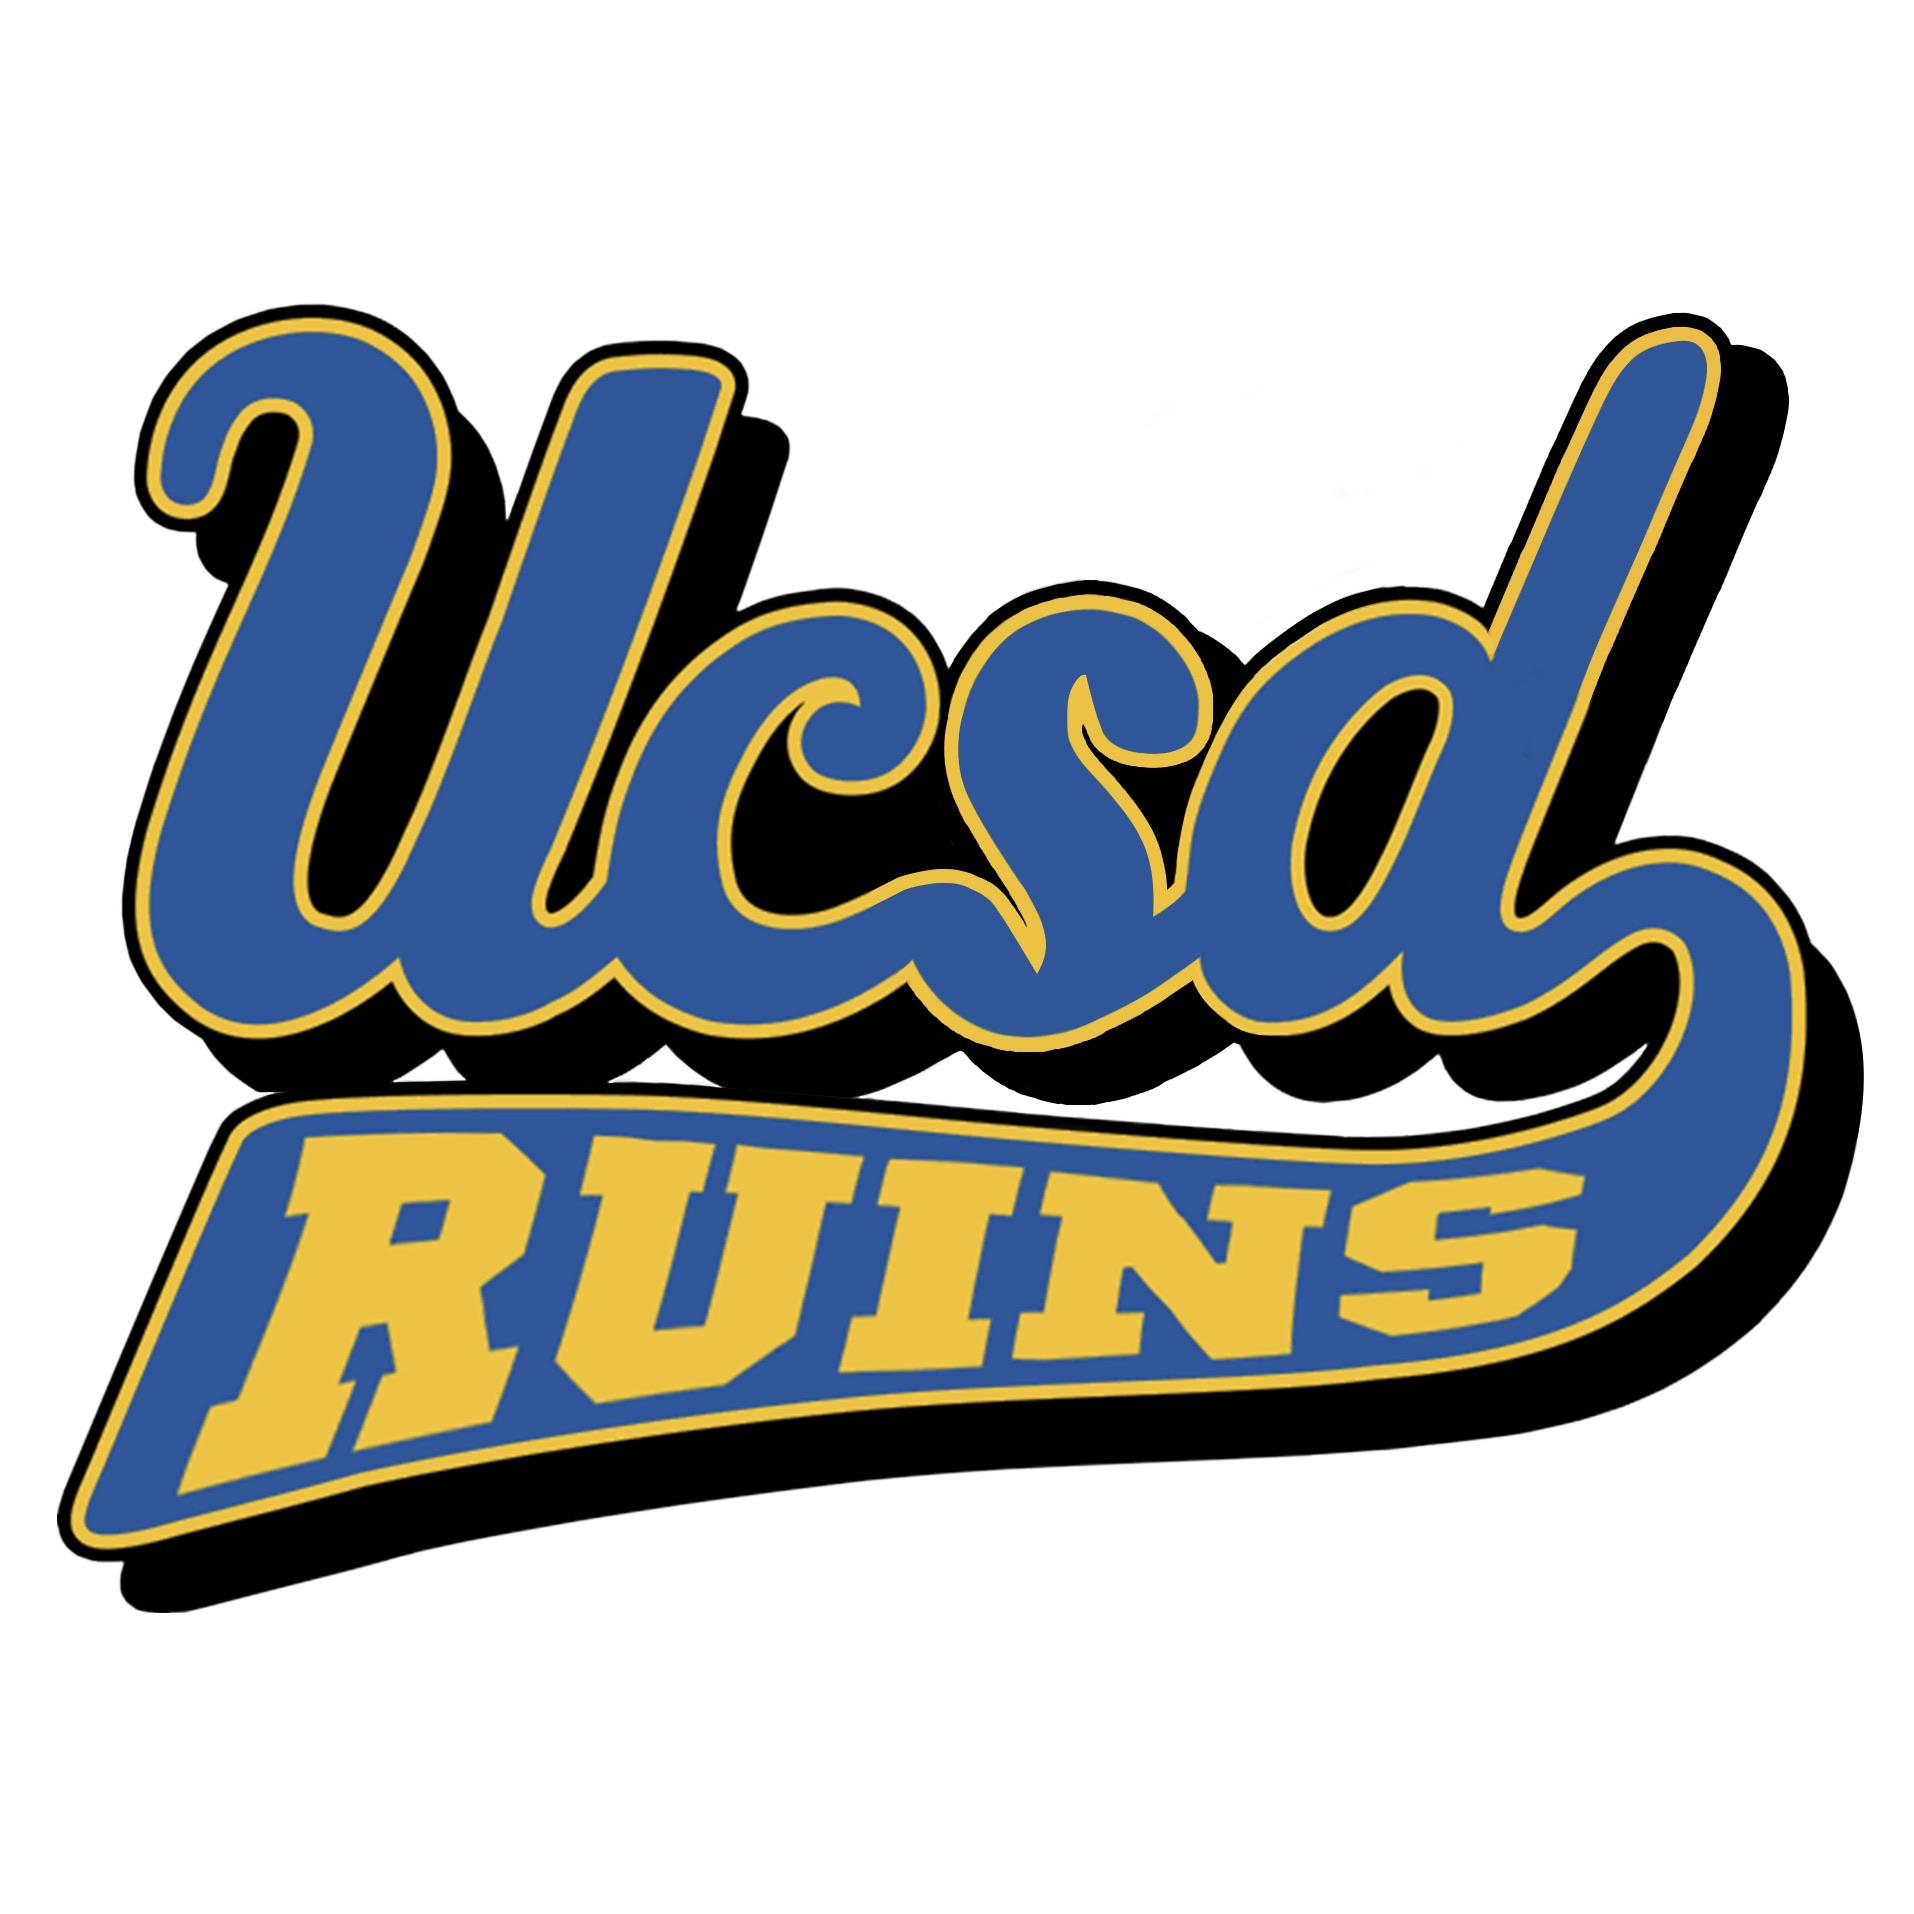 I turned the UCLA logo into a UCSD logo instead of studying.